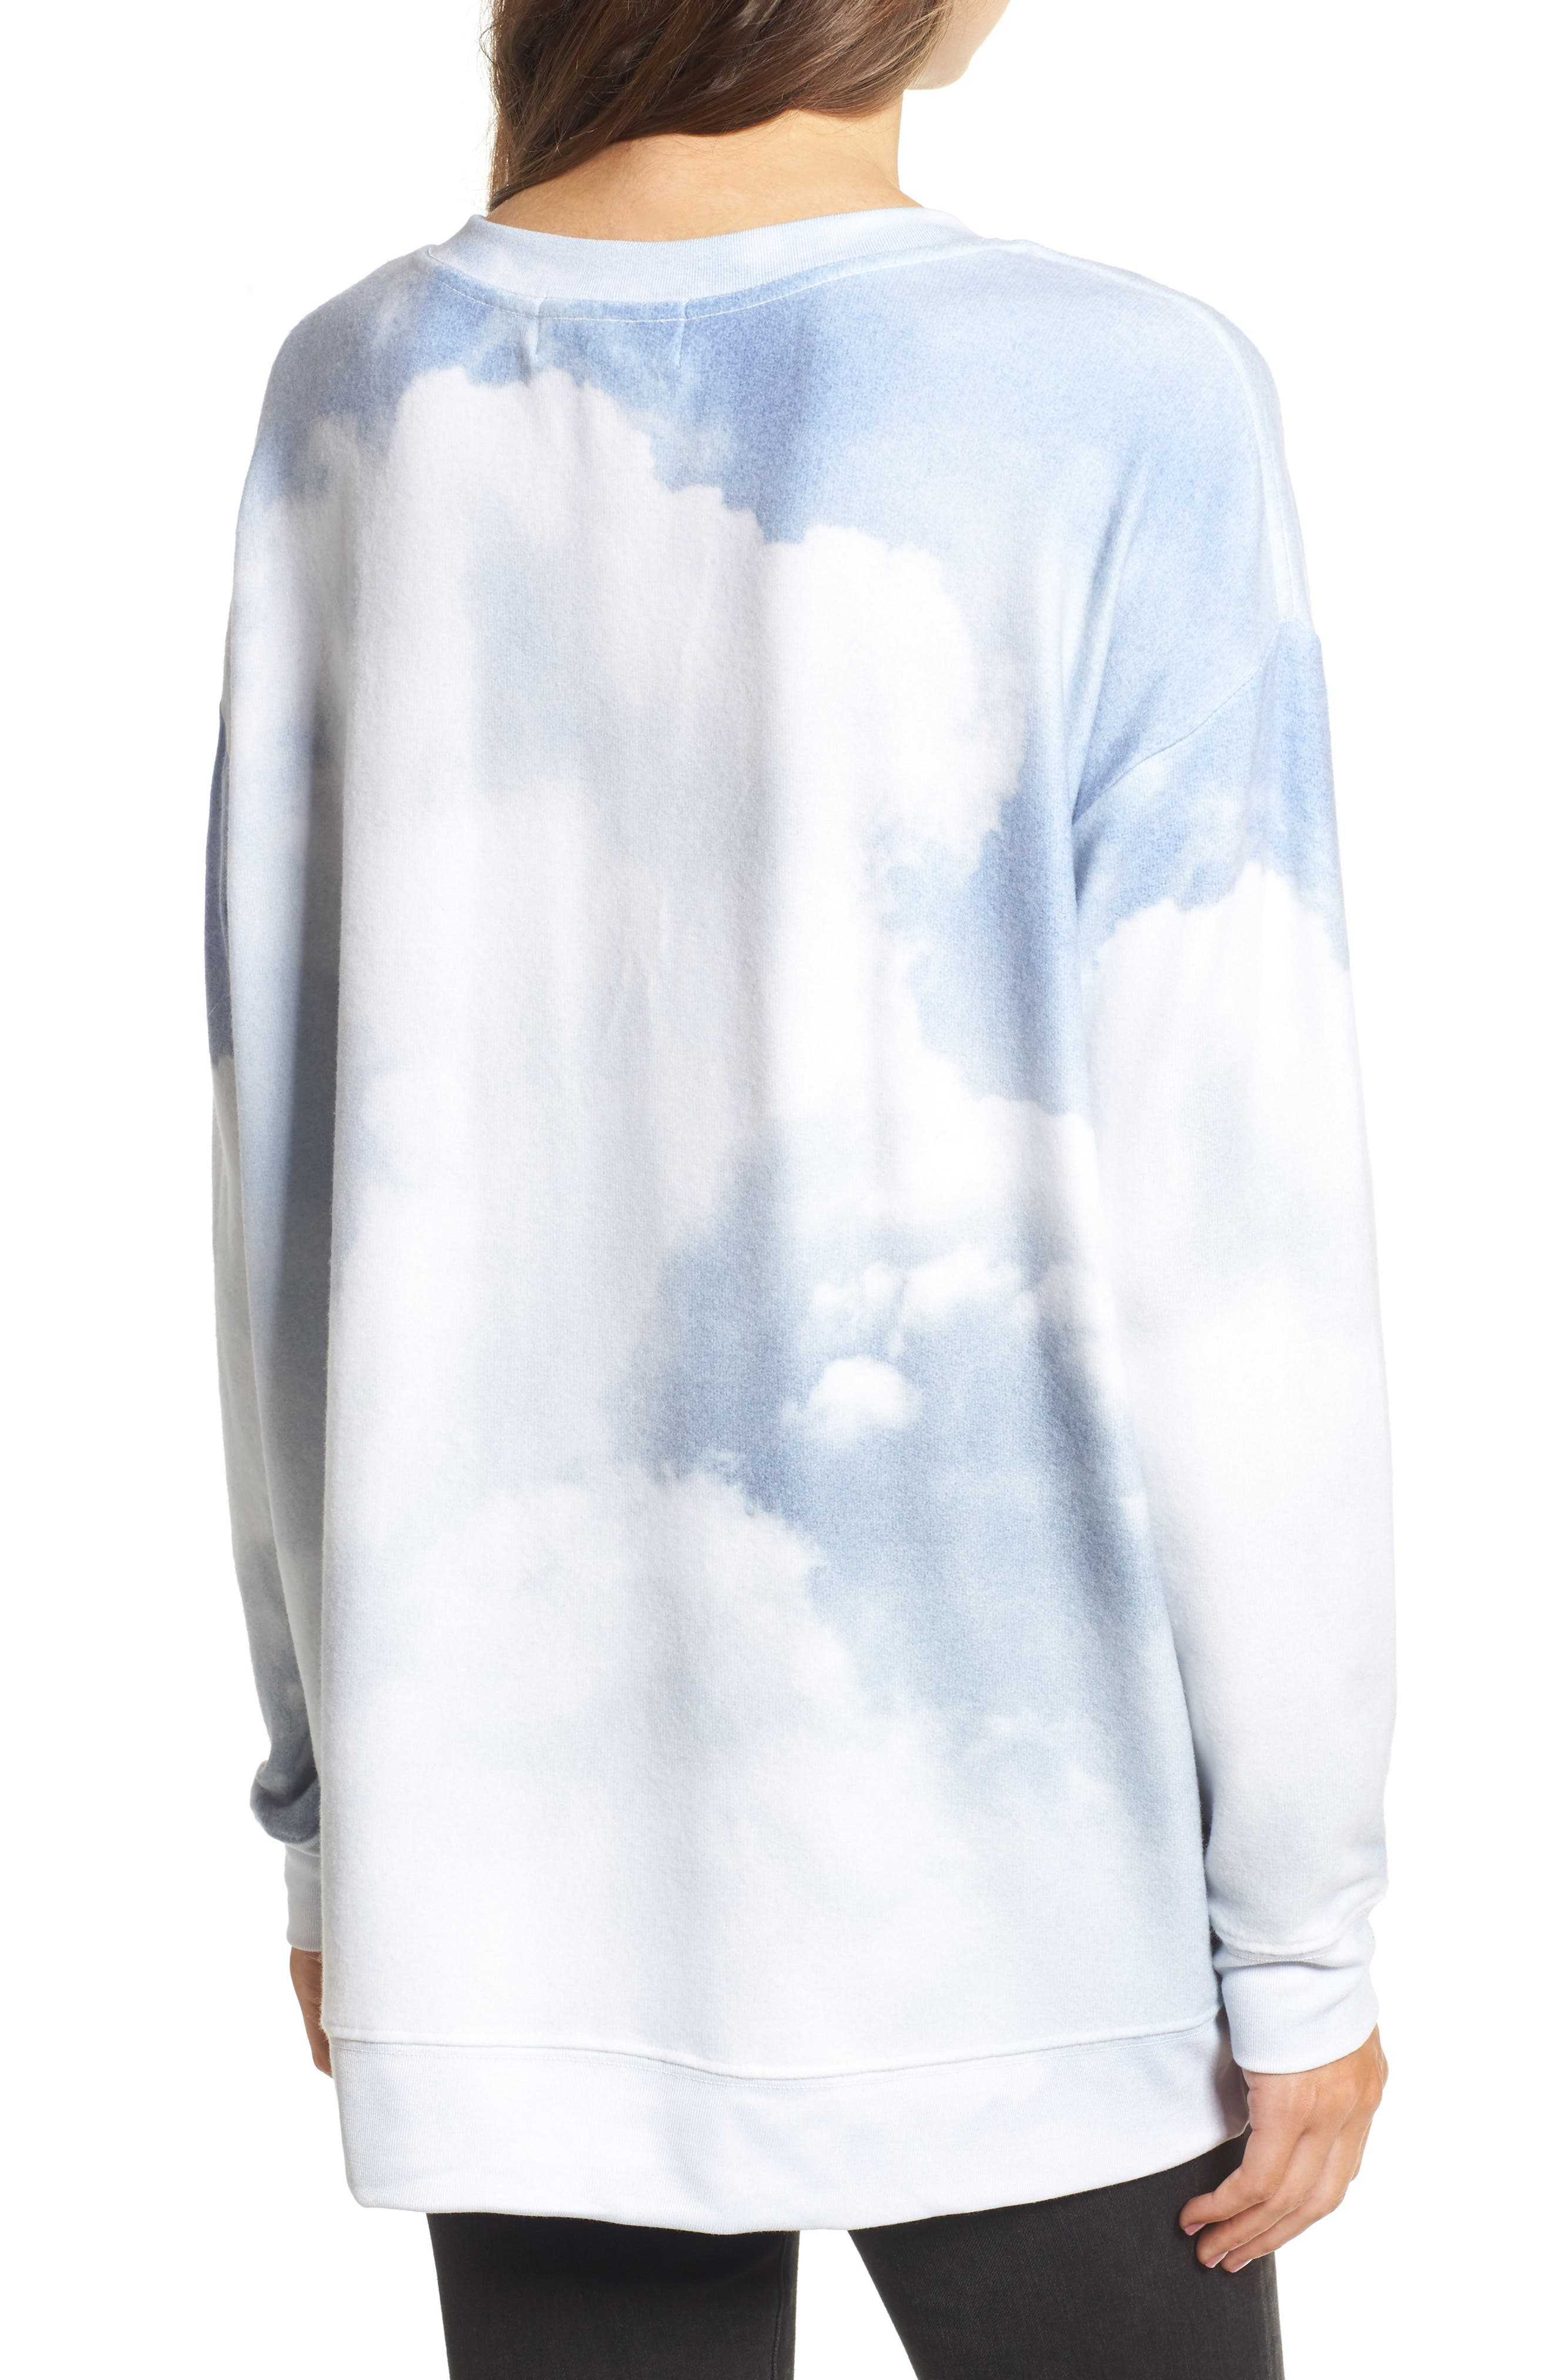 Heavens Roadtrip Sweatshirt,                             Alternate thumbnail 2, color,                             660